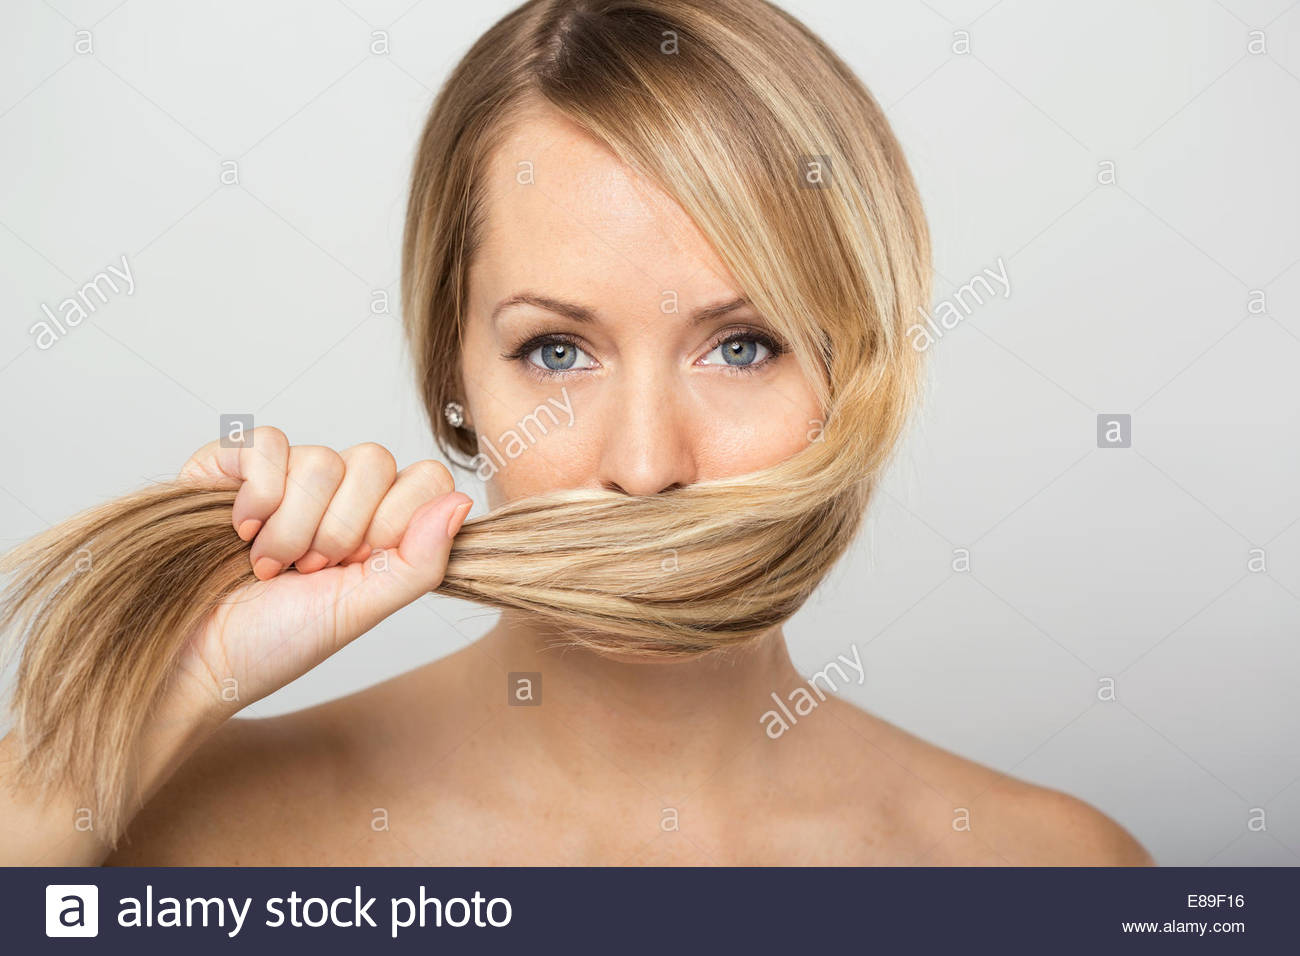 Portrait of blonde woman holding hair over face - Stock Image